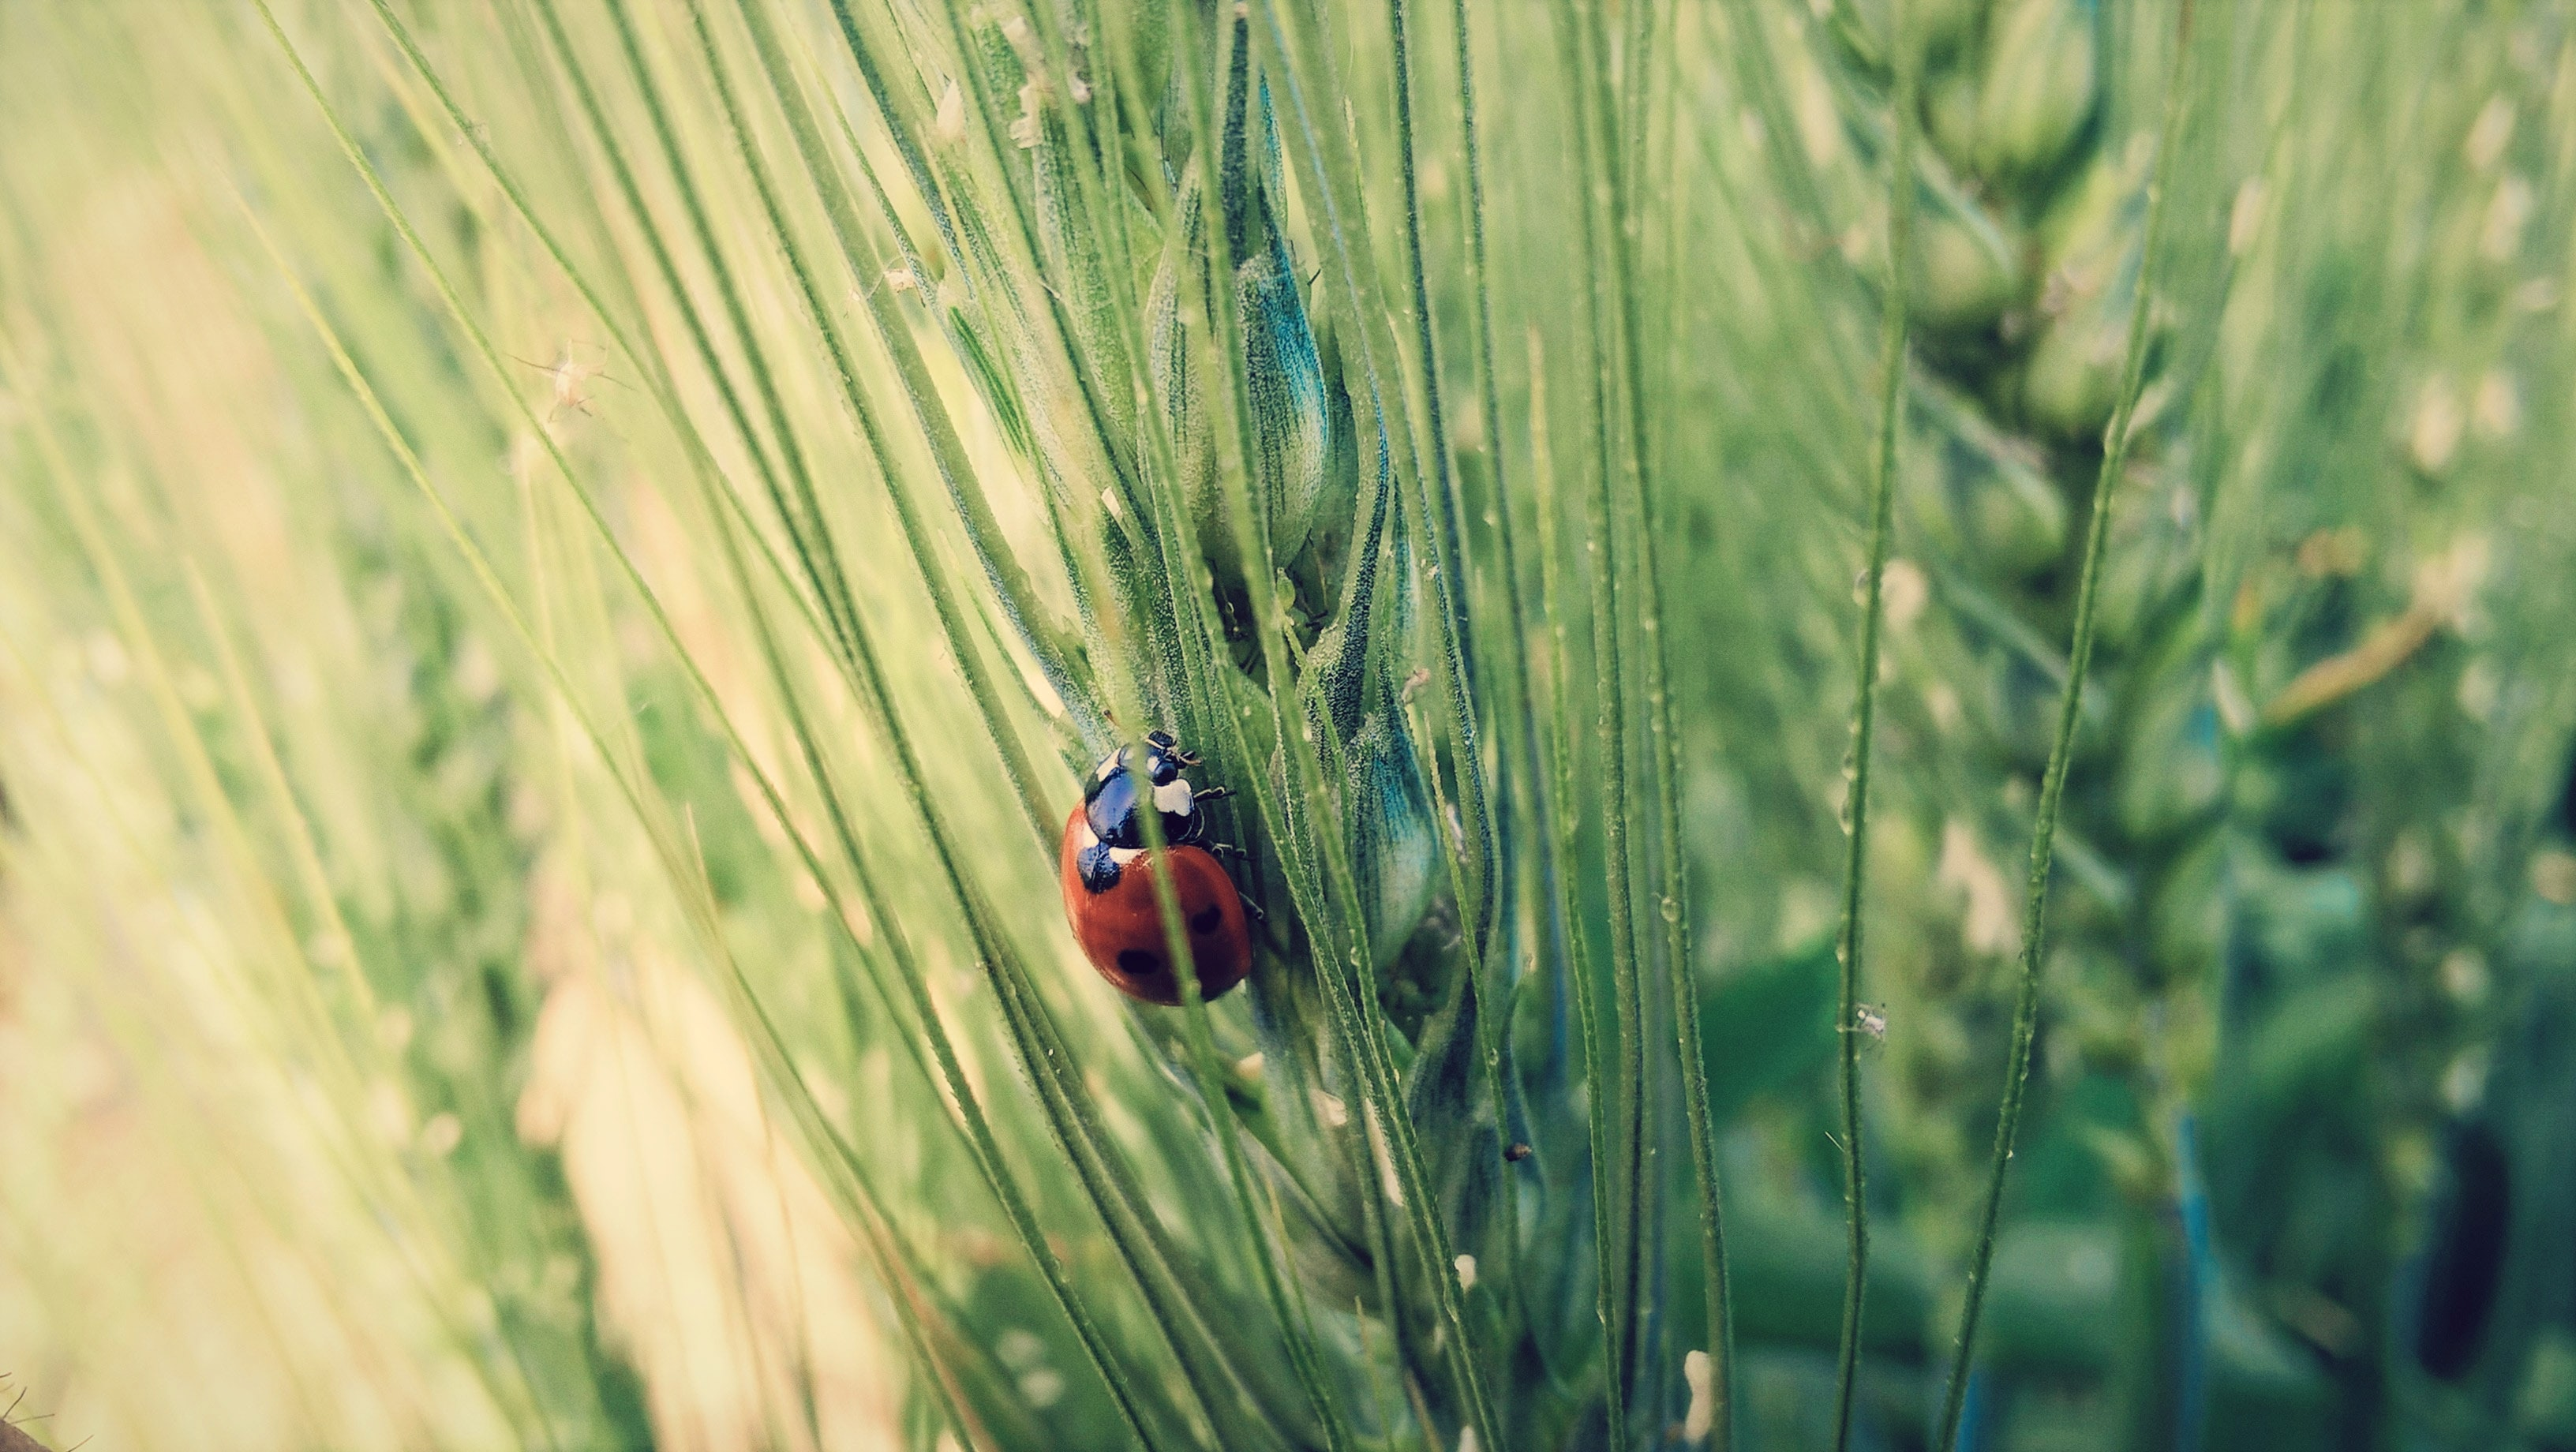 Ladybug crawls up the leaves of tall grass